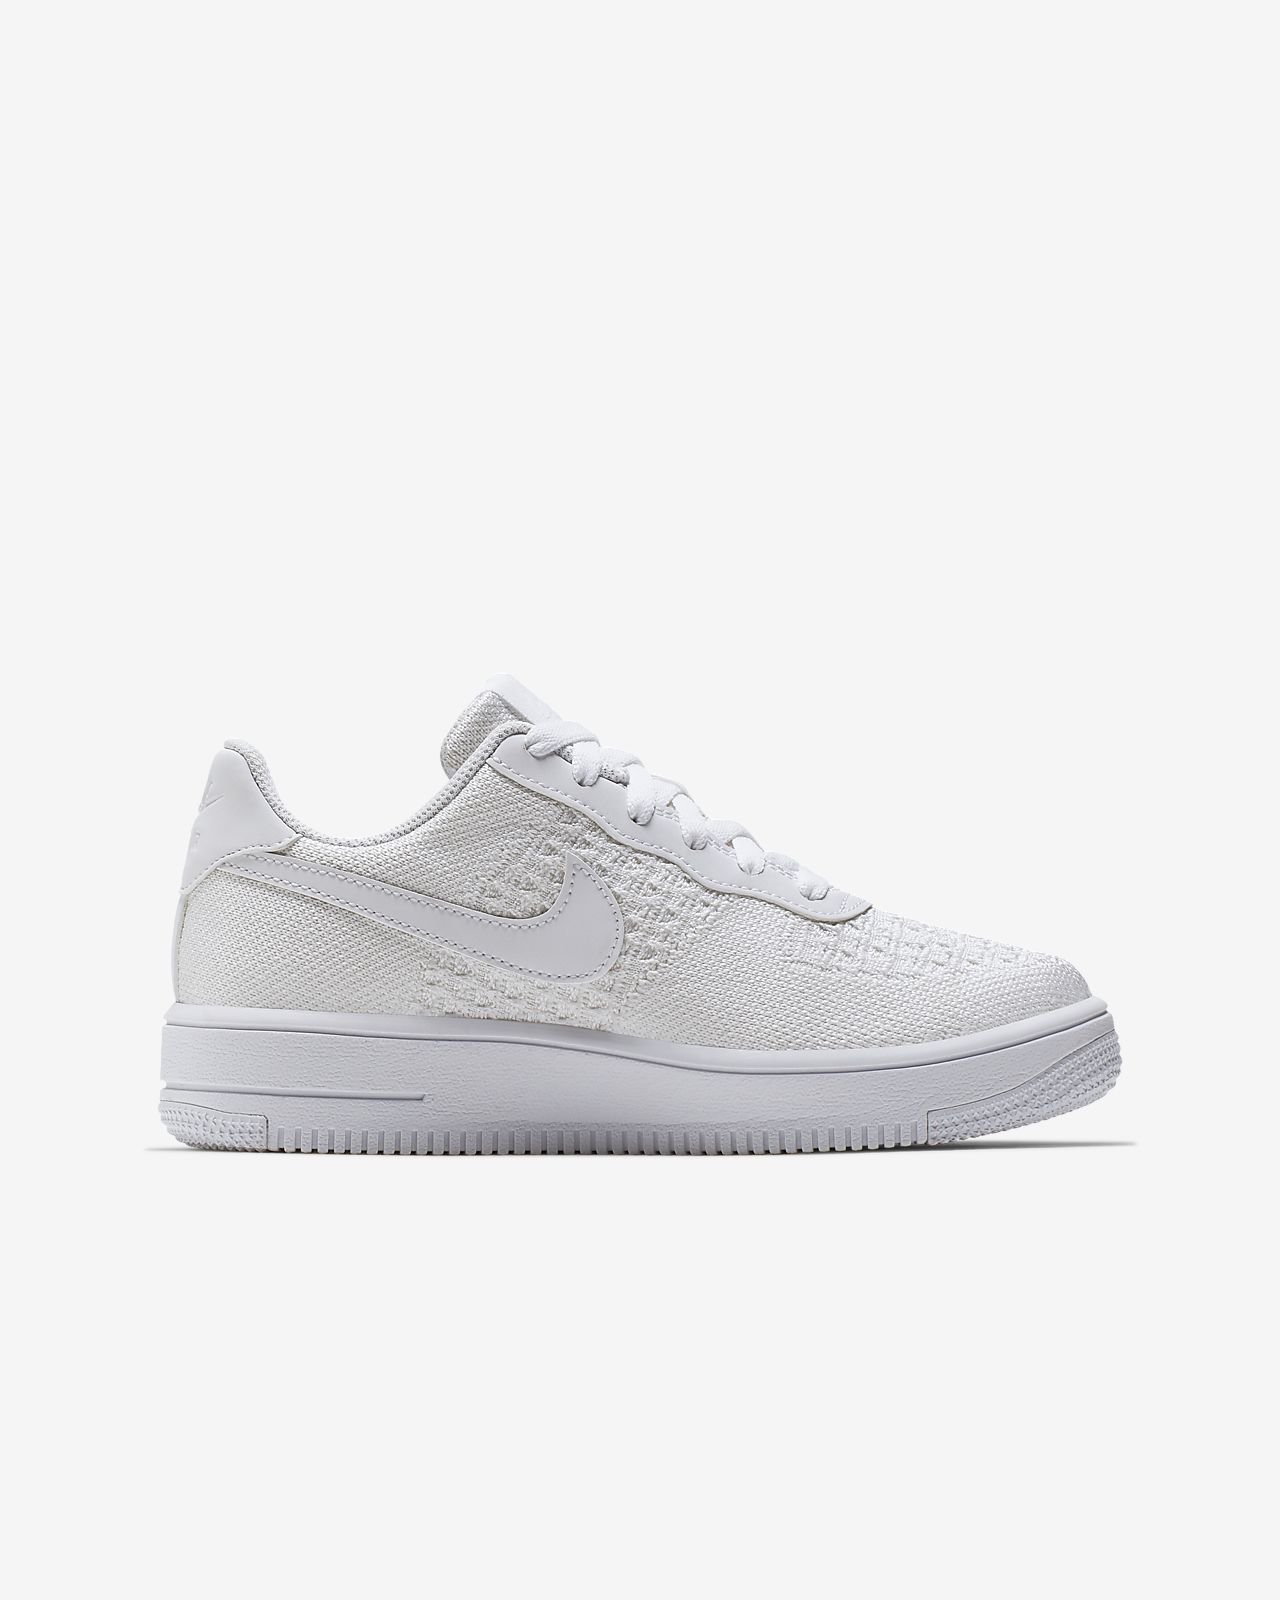 youth nike air force 1 wit coupon code for 226d5 e1f7e